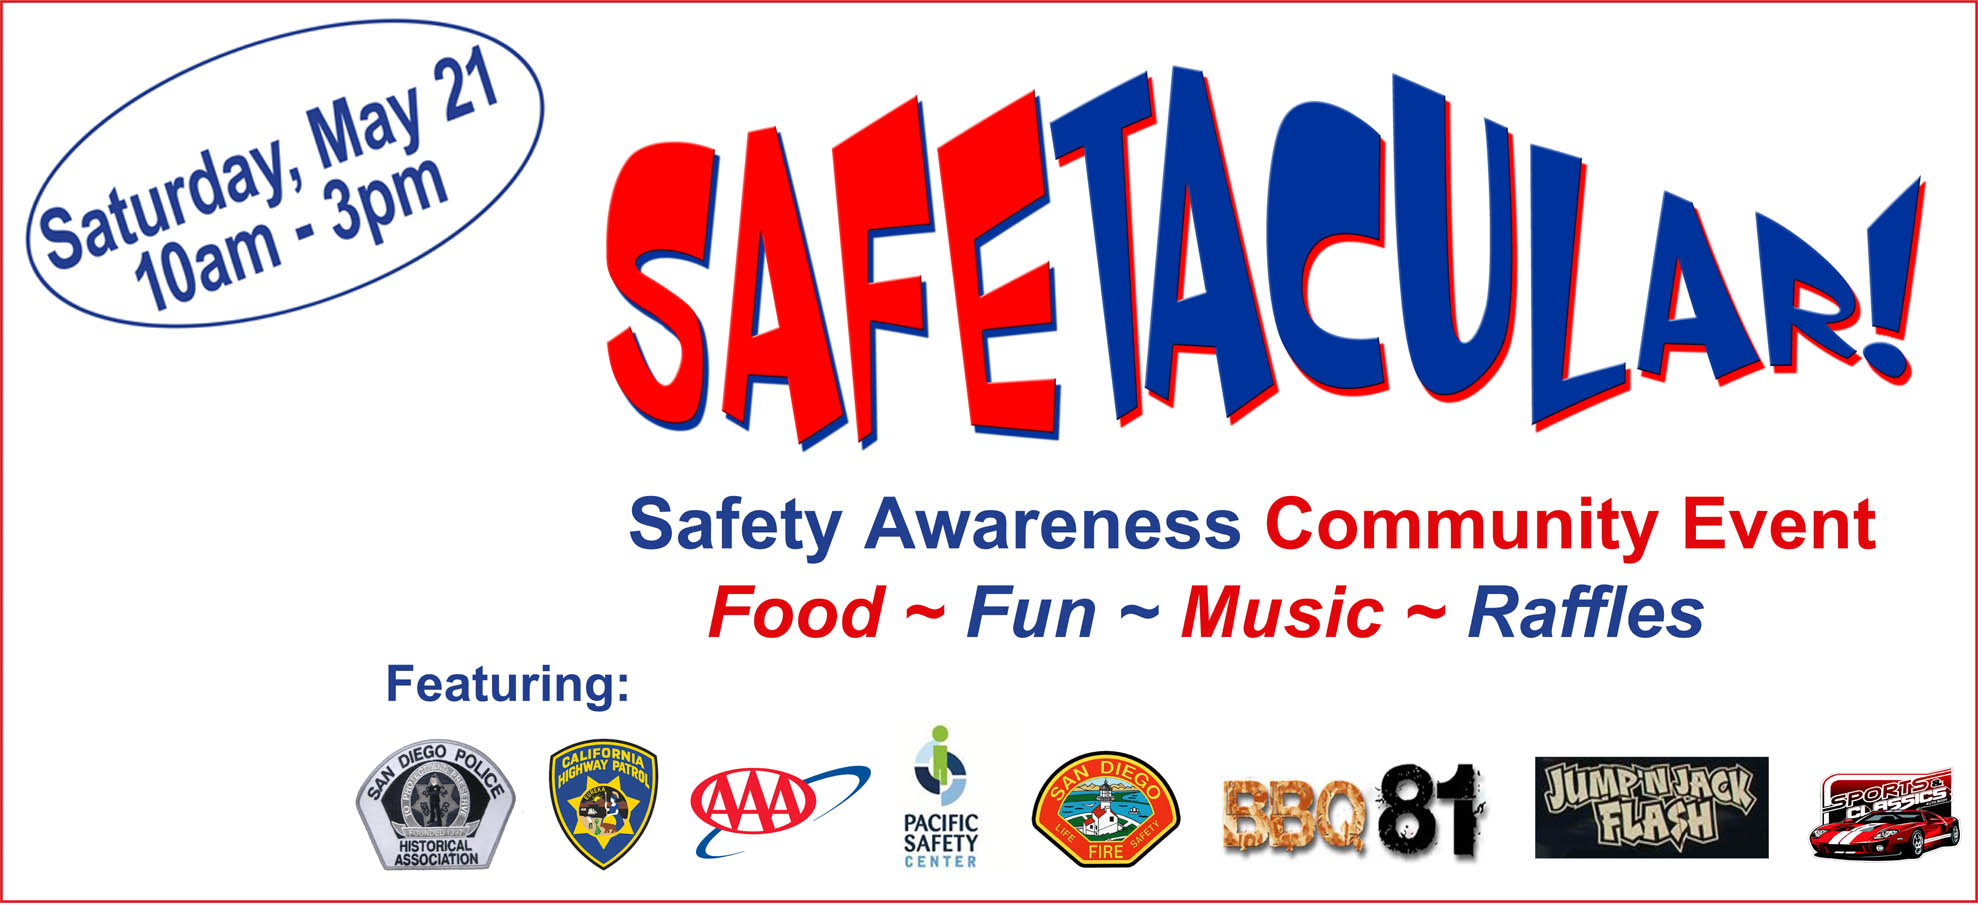 Safetacular Safety Awareness Community Event